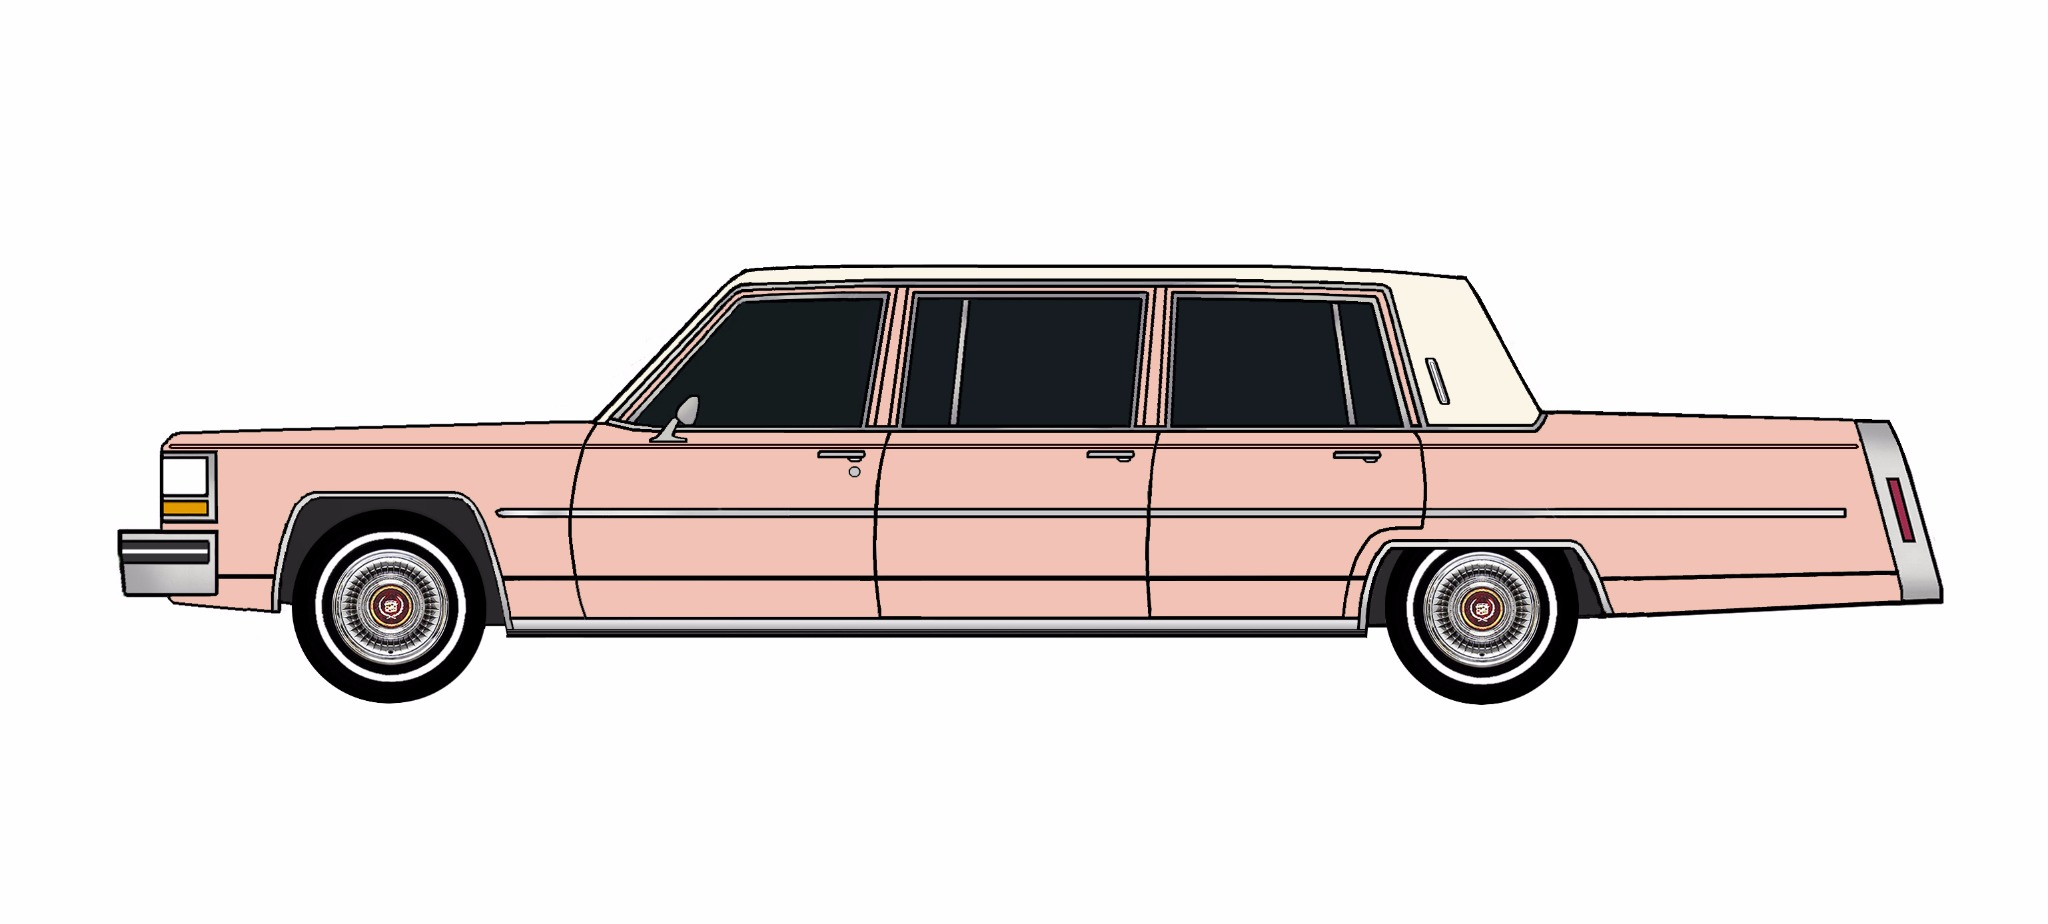 1981 Cadillac Fleetwood Funeral Limo ROSE PINK